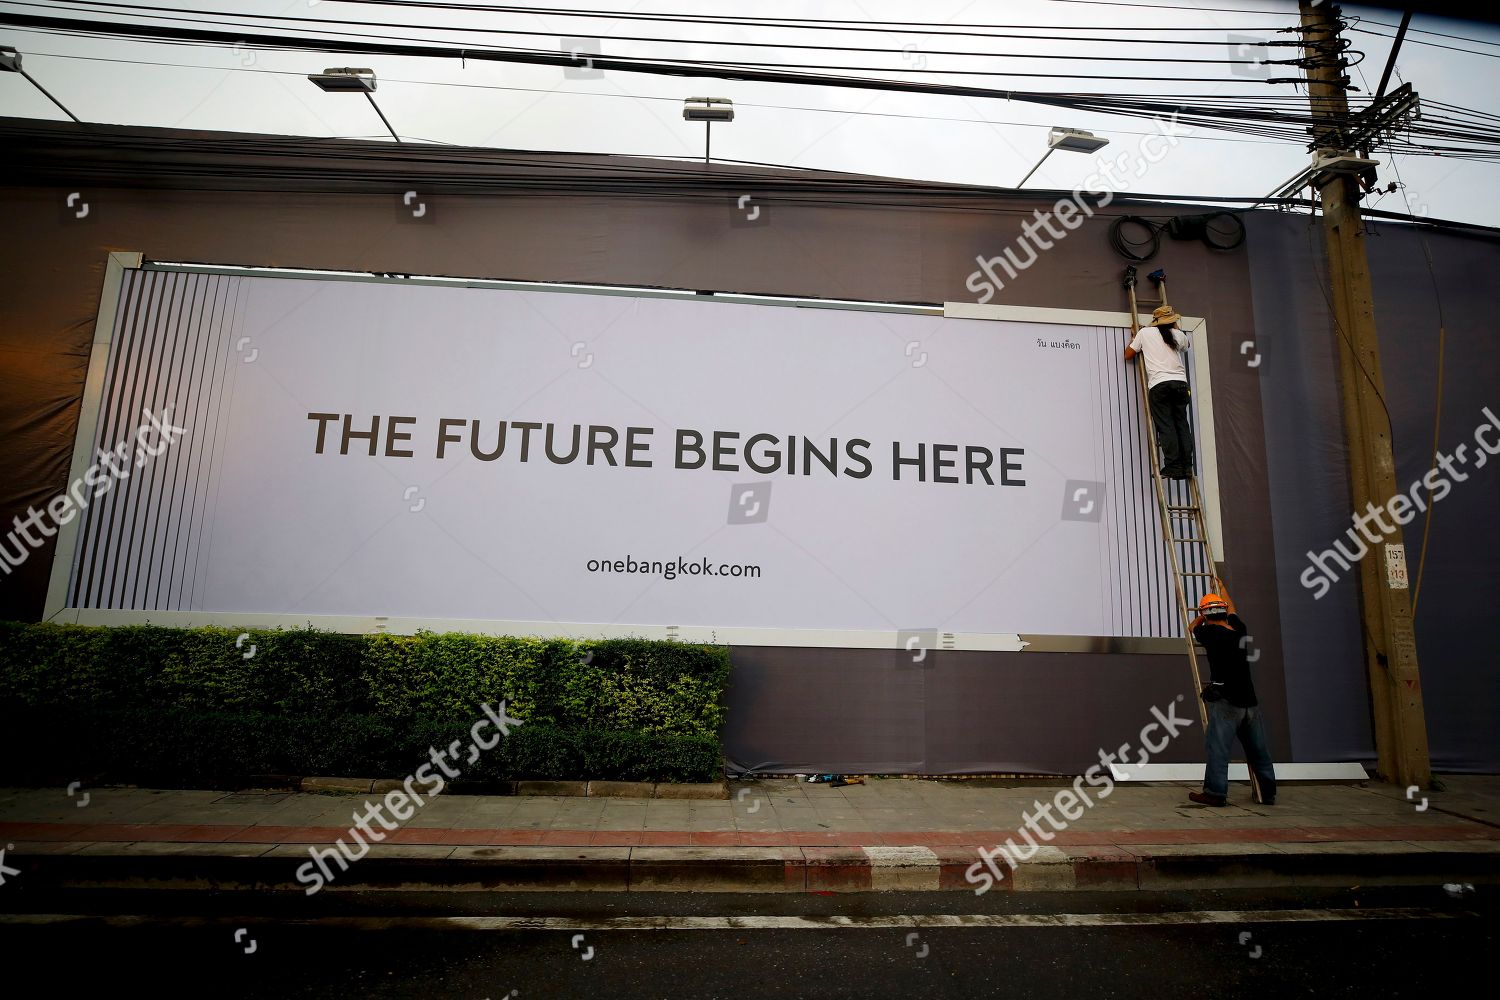 Workers intall large billboard outside construction site Editorial